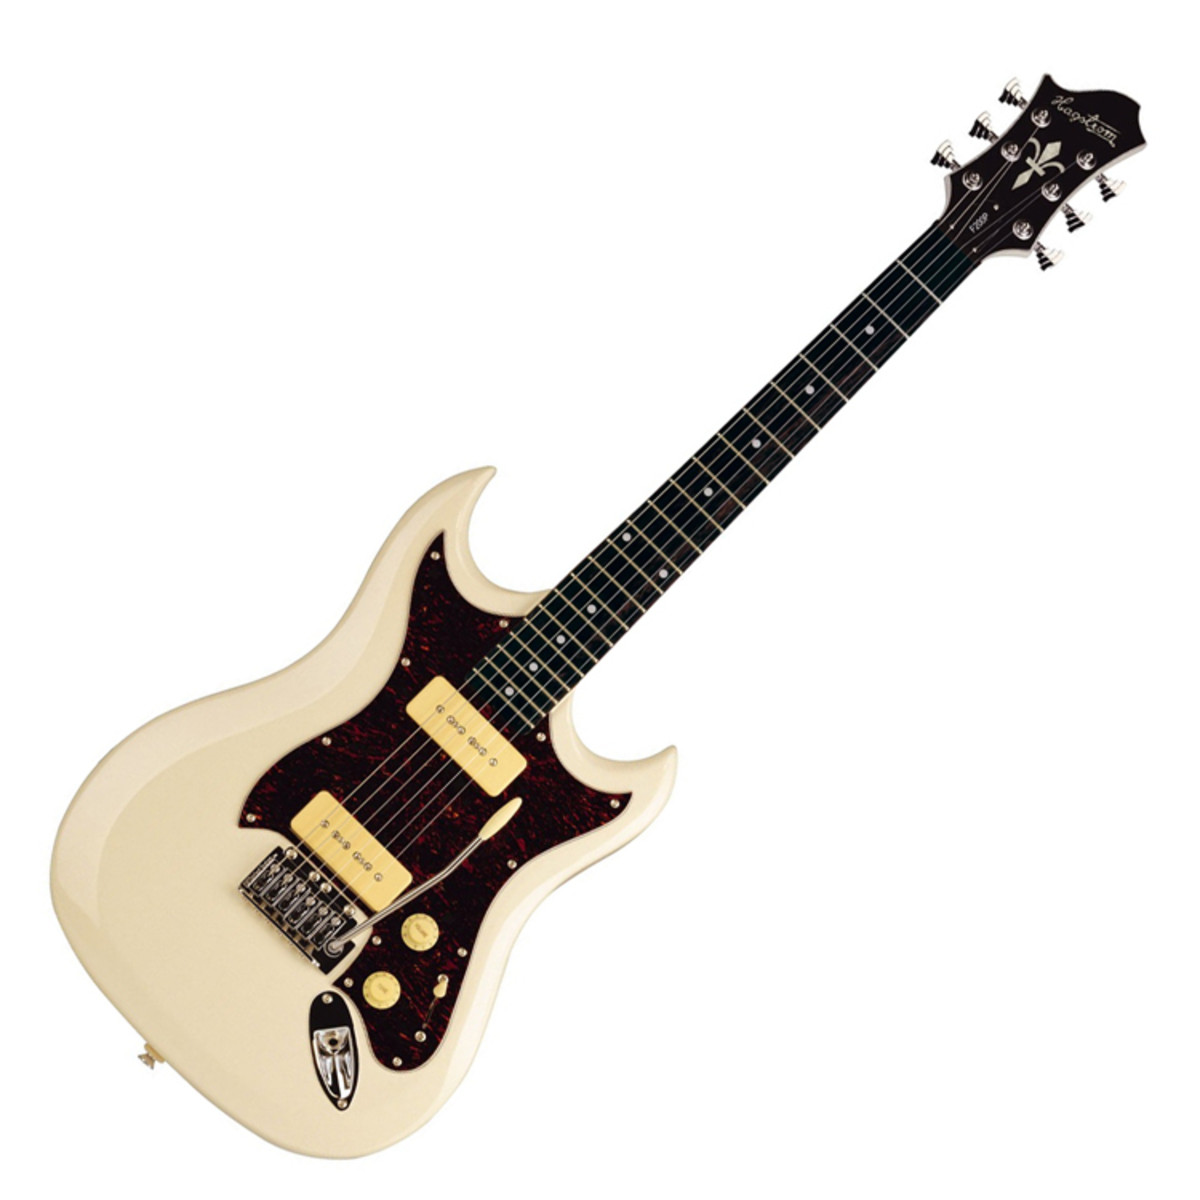 disc hagstrom f200p electric guitar cream at. Black Bedroom Furniture Sets. Home Design Ideas